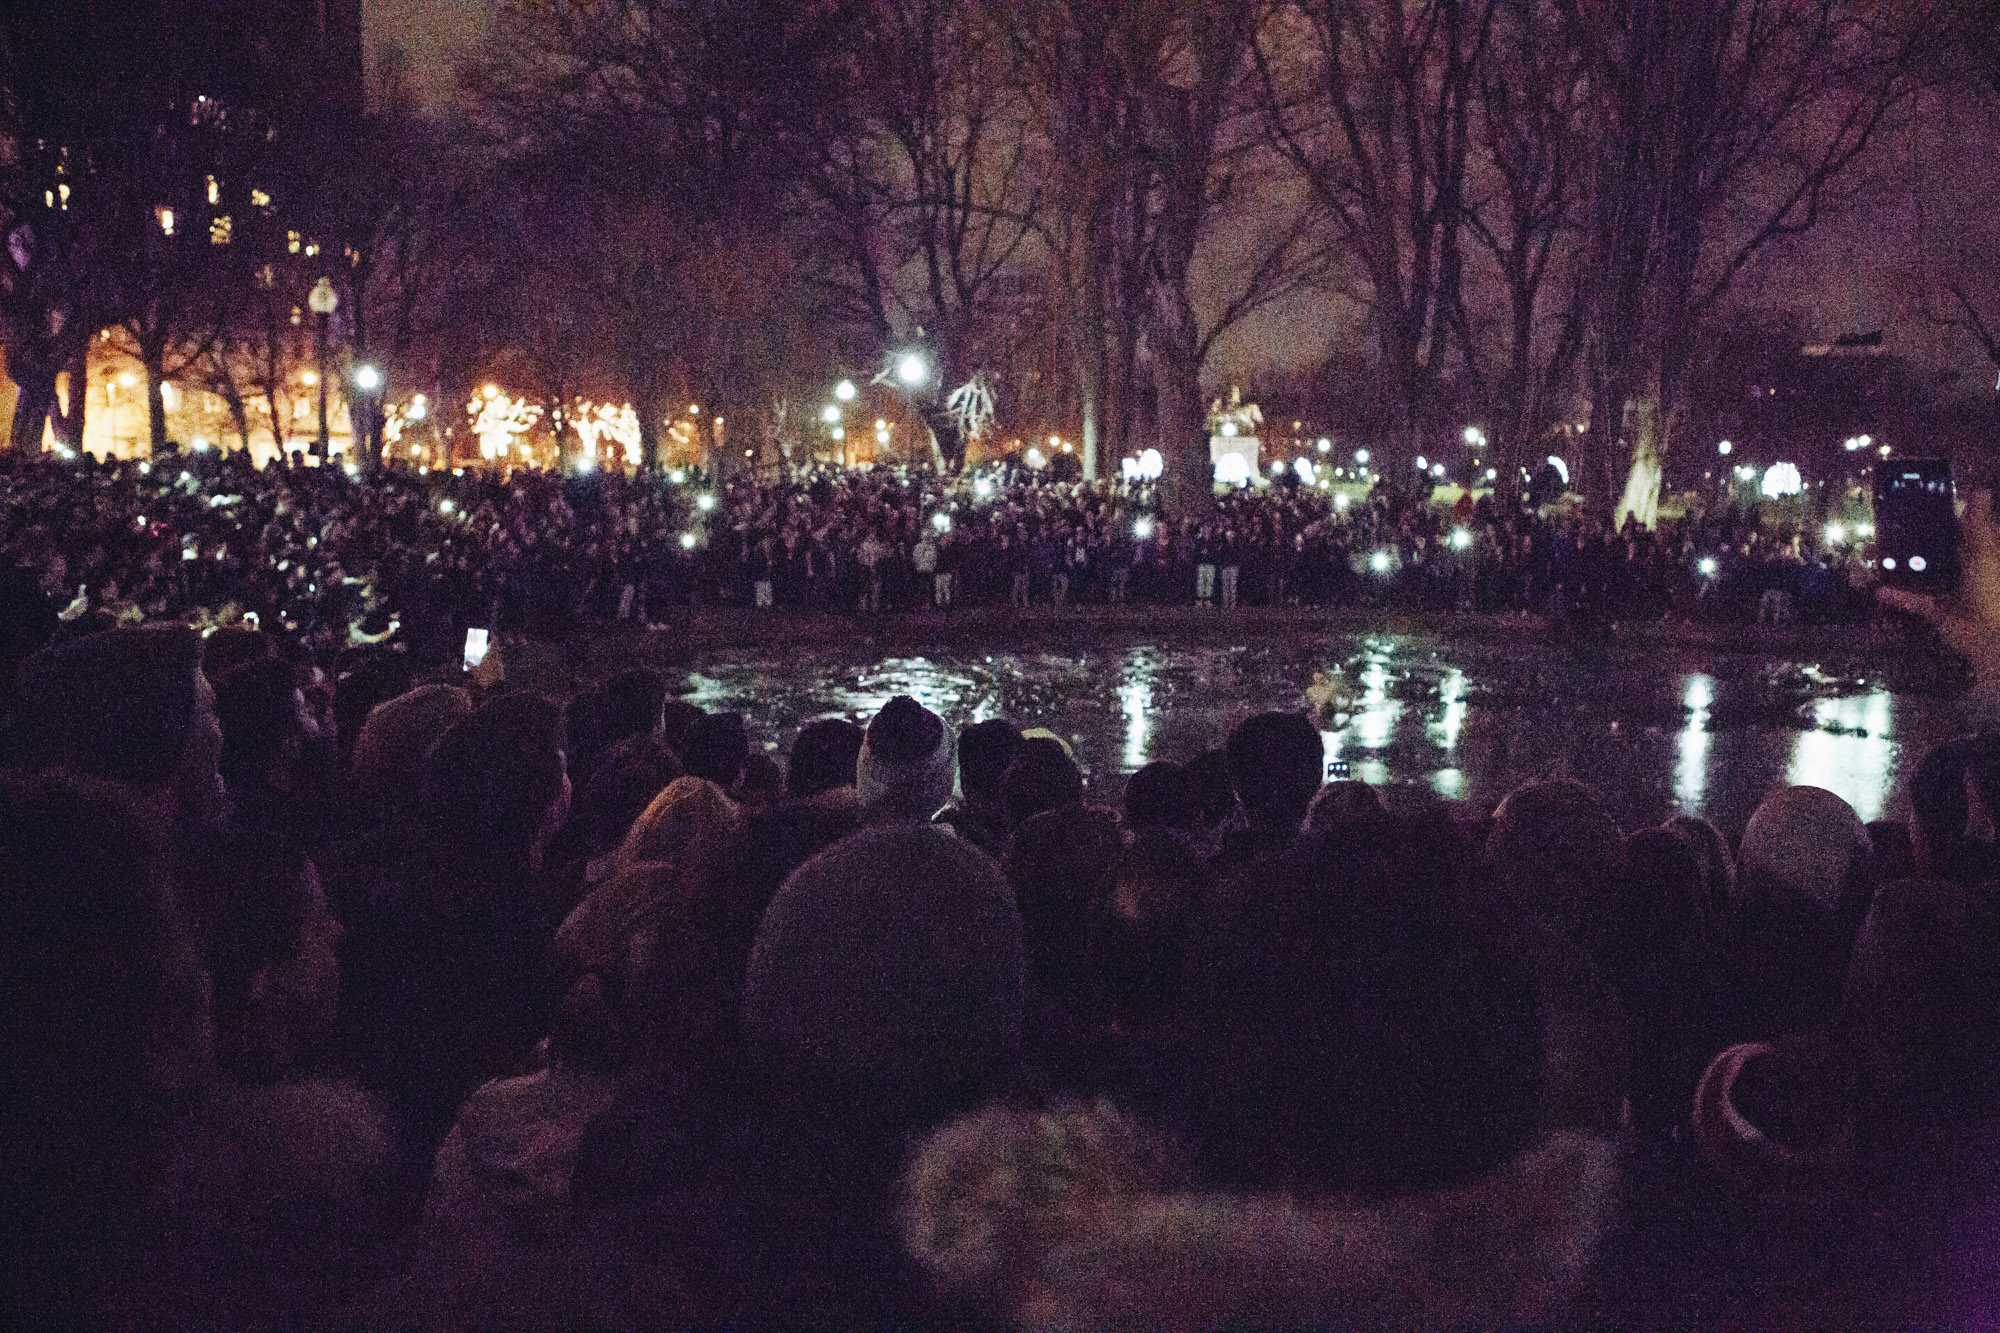 As+a+large+crowd+gathers+in+the+Boston+Public+Gardens%2C+a+brave+fan+ventures+out+onto+the+ice.